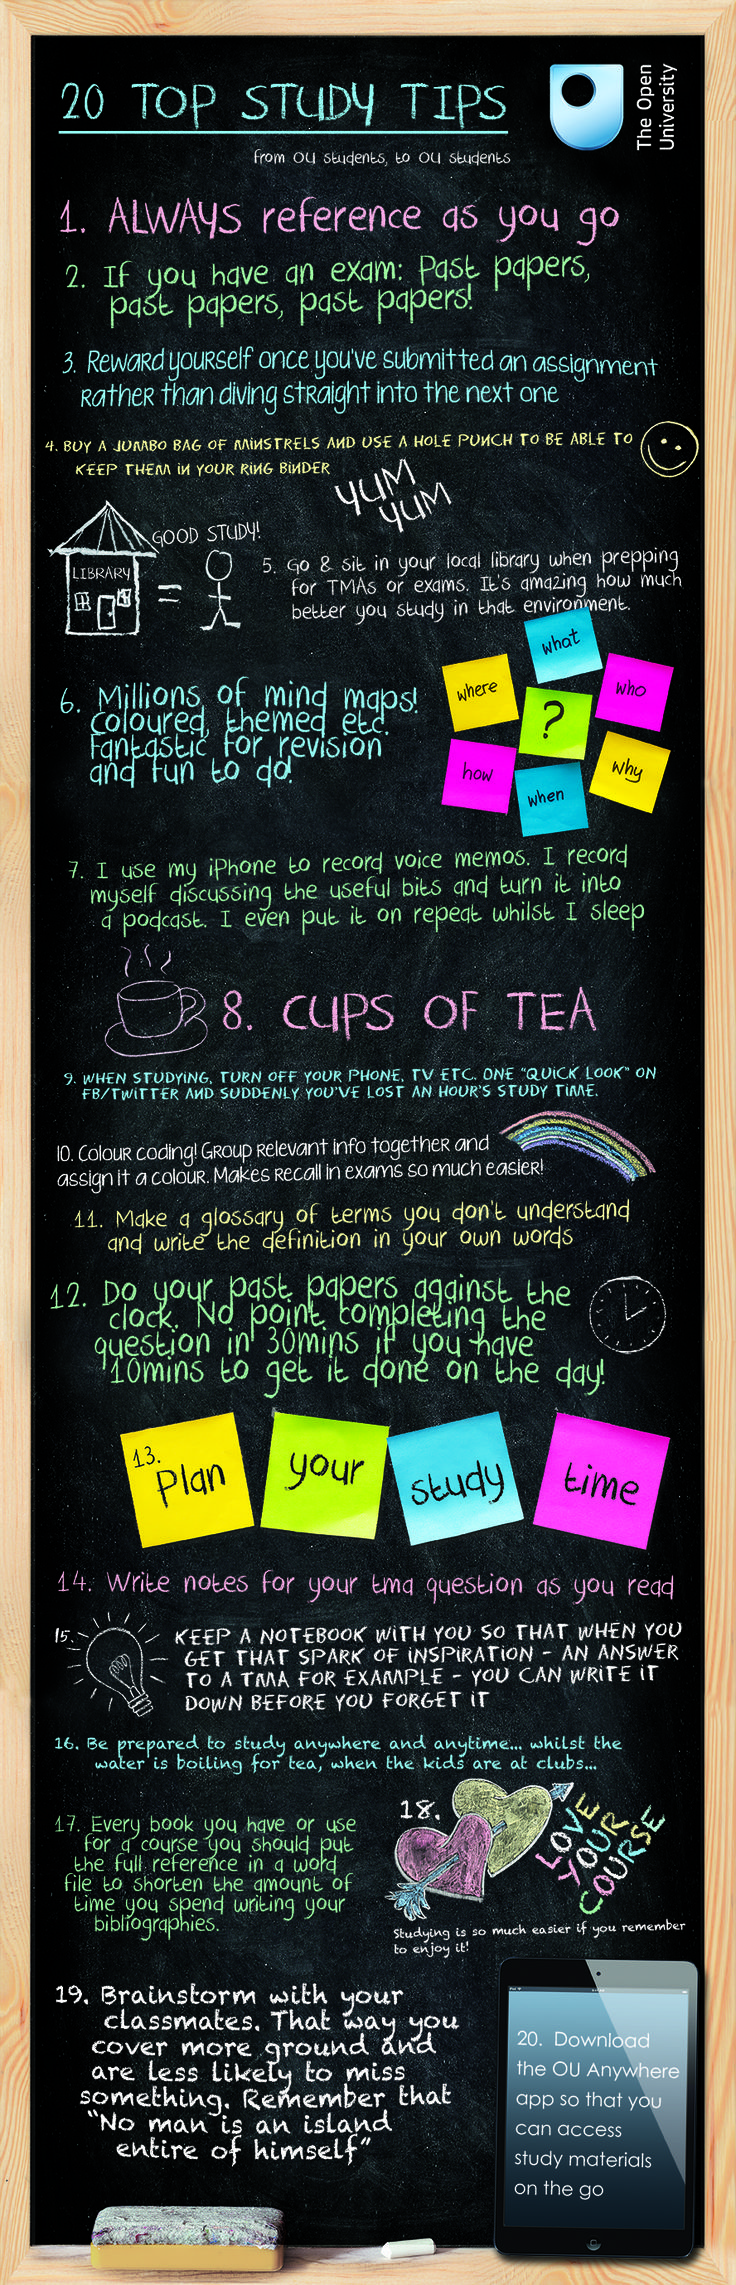 20 Top Study Tips - from OU students, to OU students (would love to create a fun flier like this that's specific to CC) http://ready-study-go.de